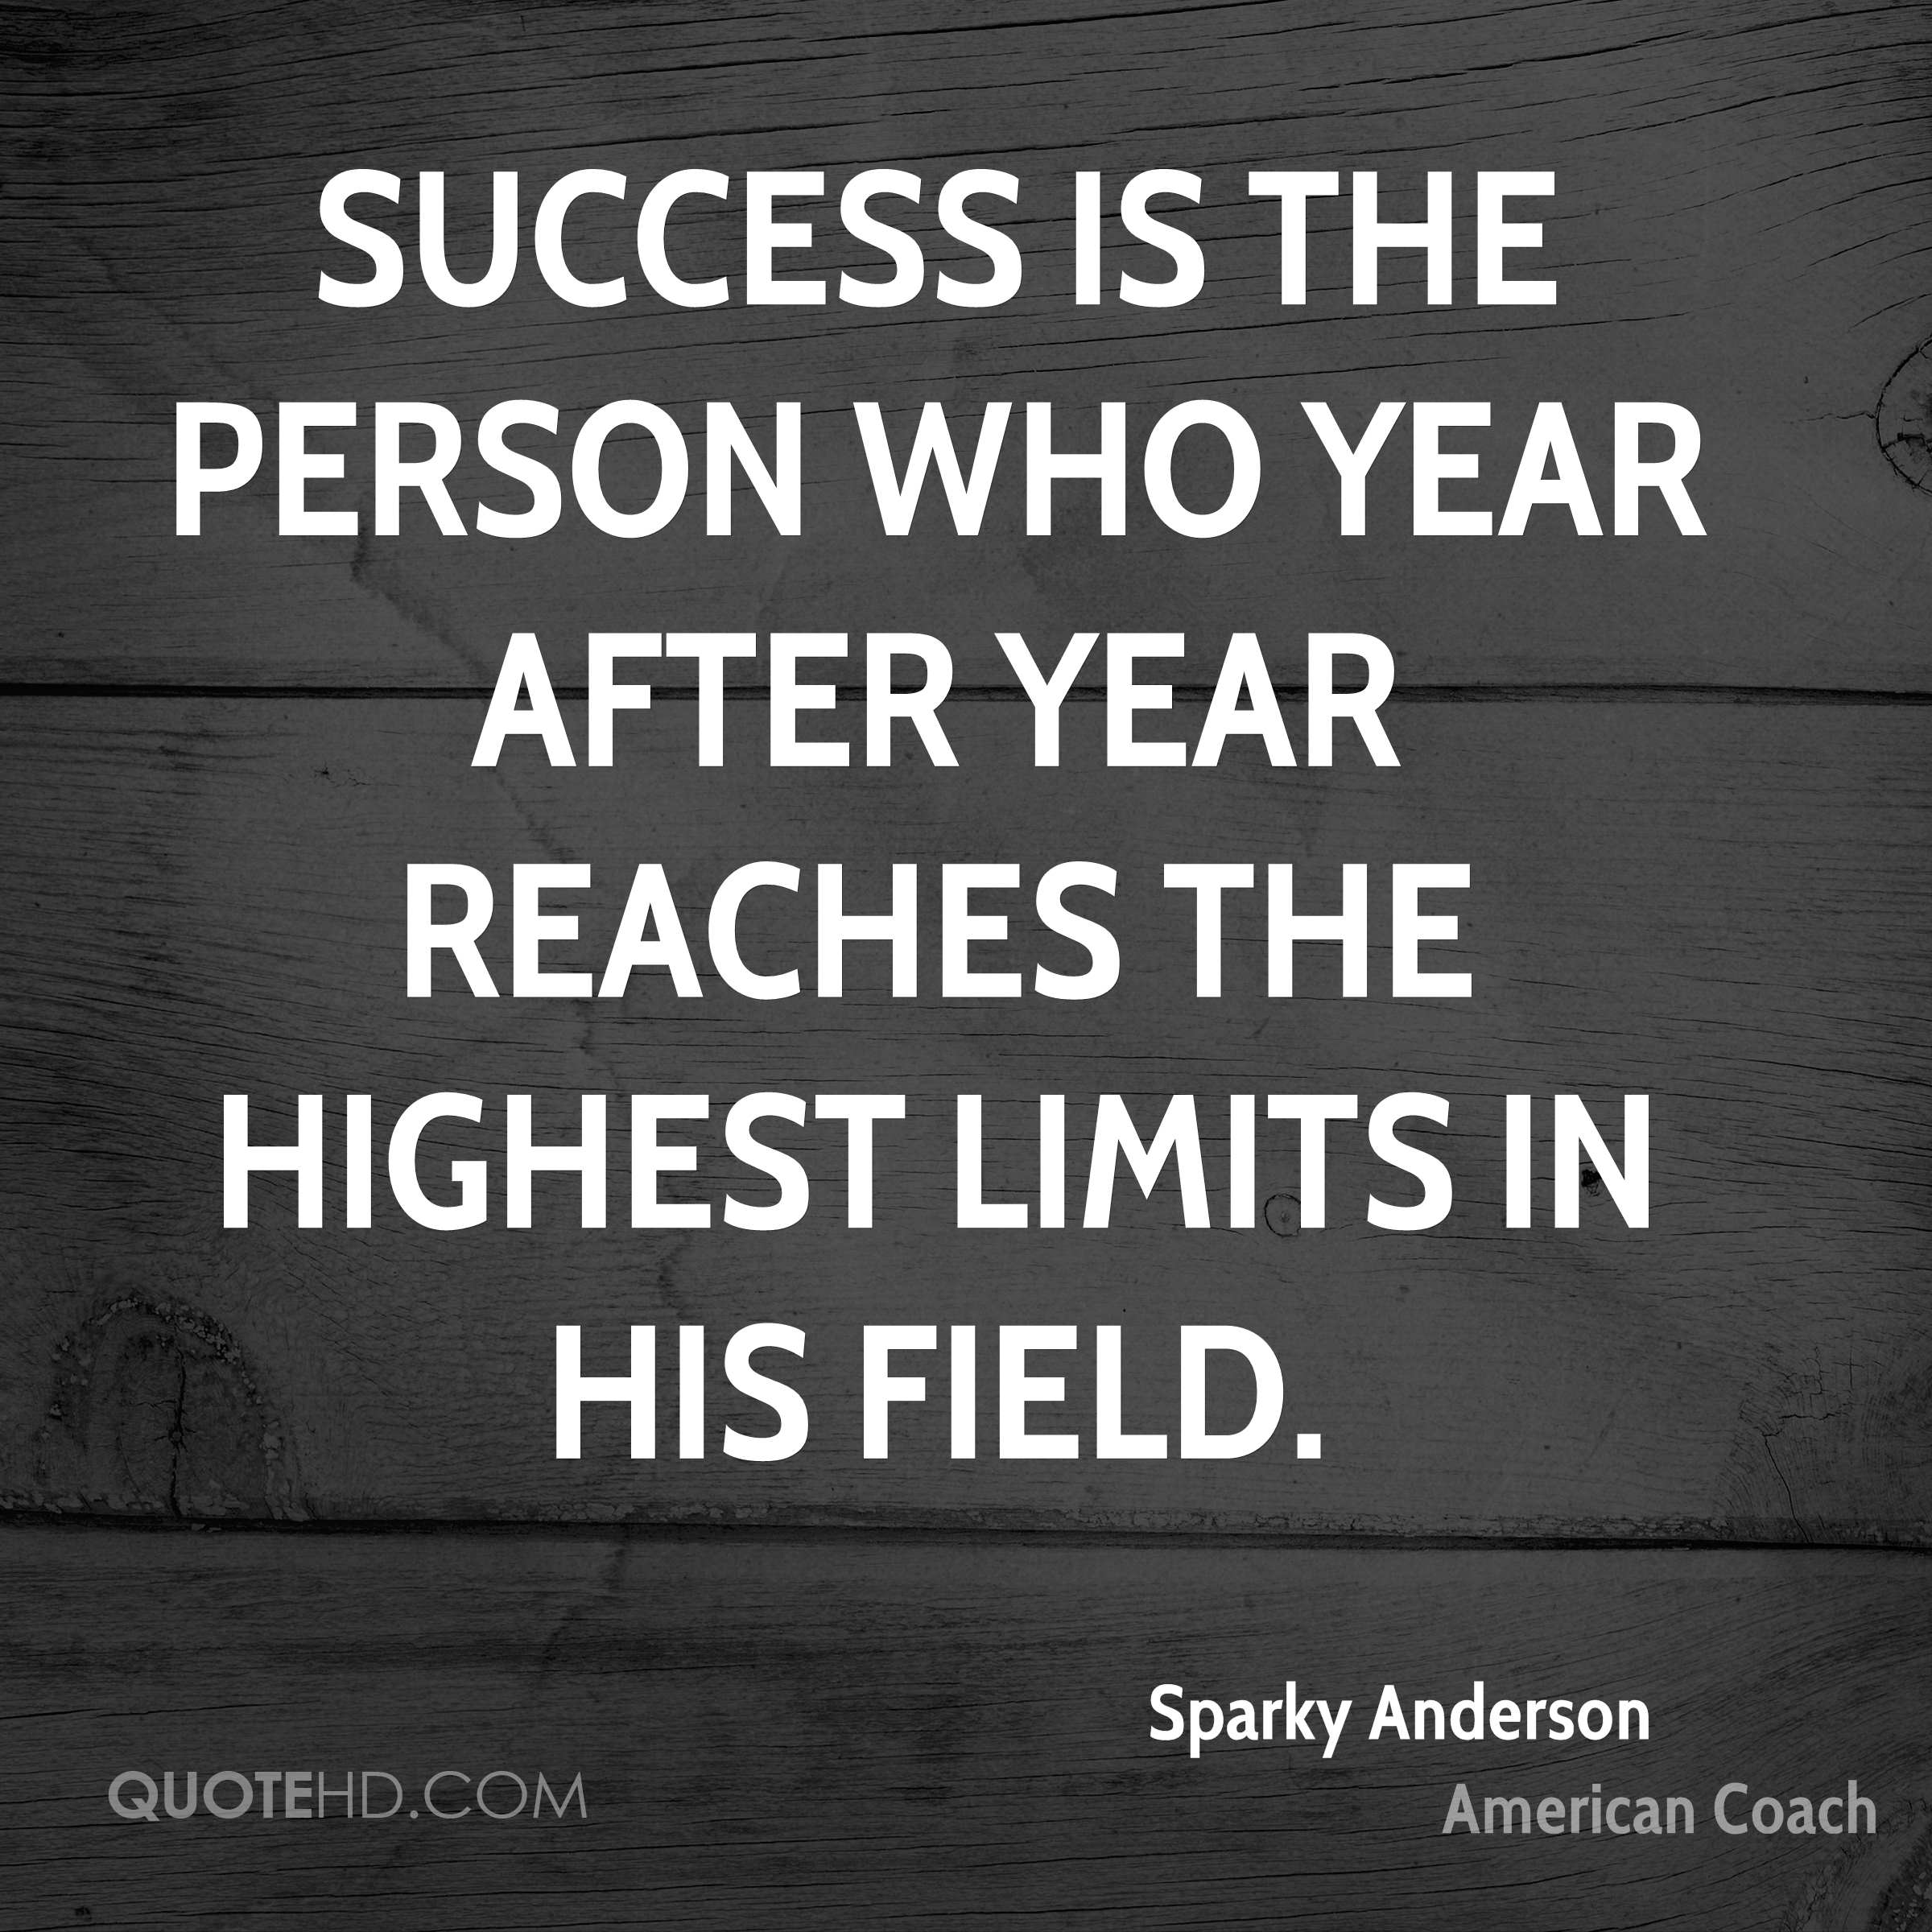 Success is the person who year after year reaches the highest limits in his field.